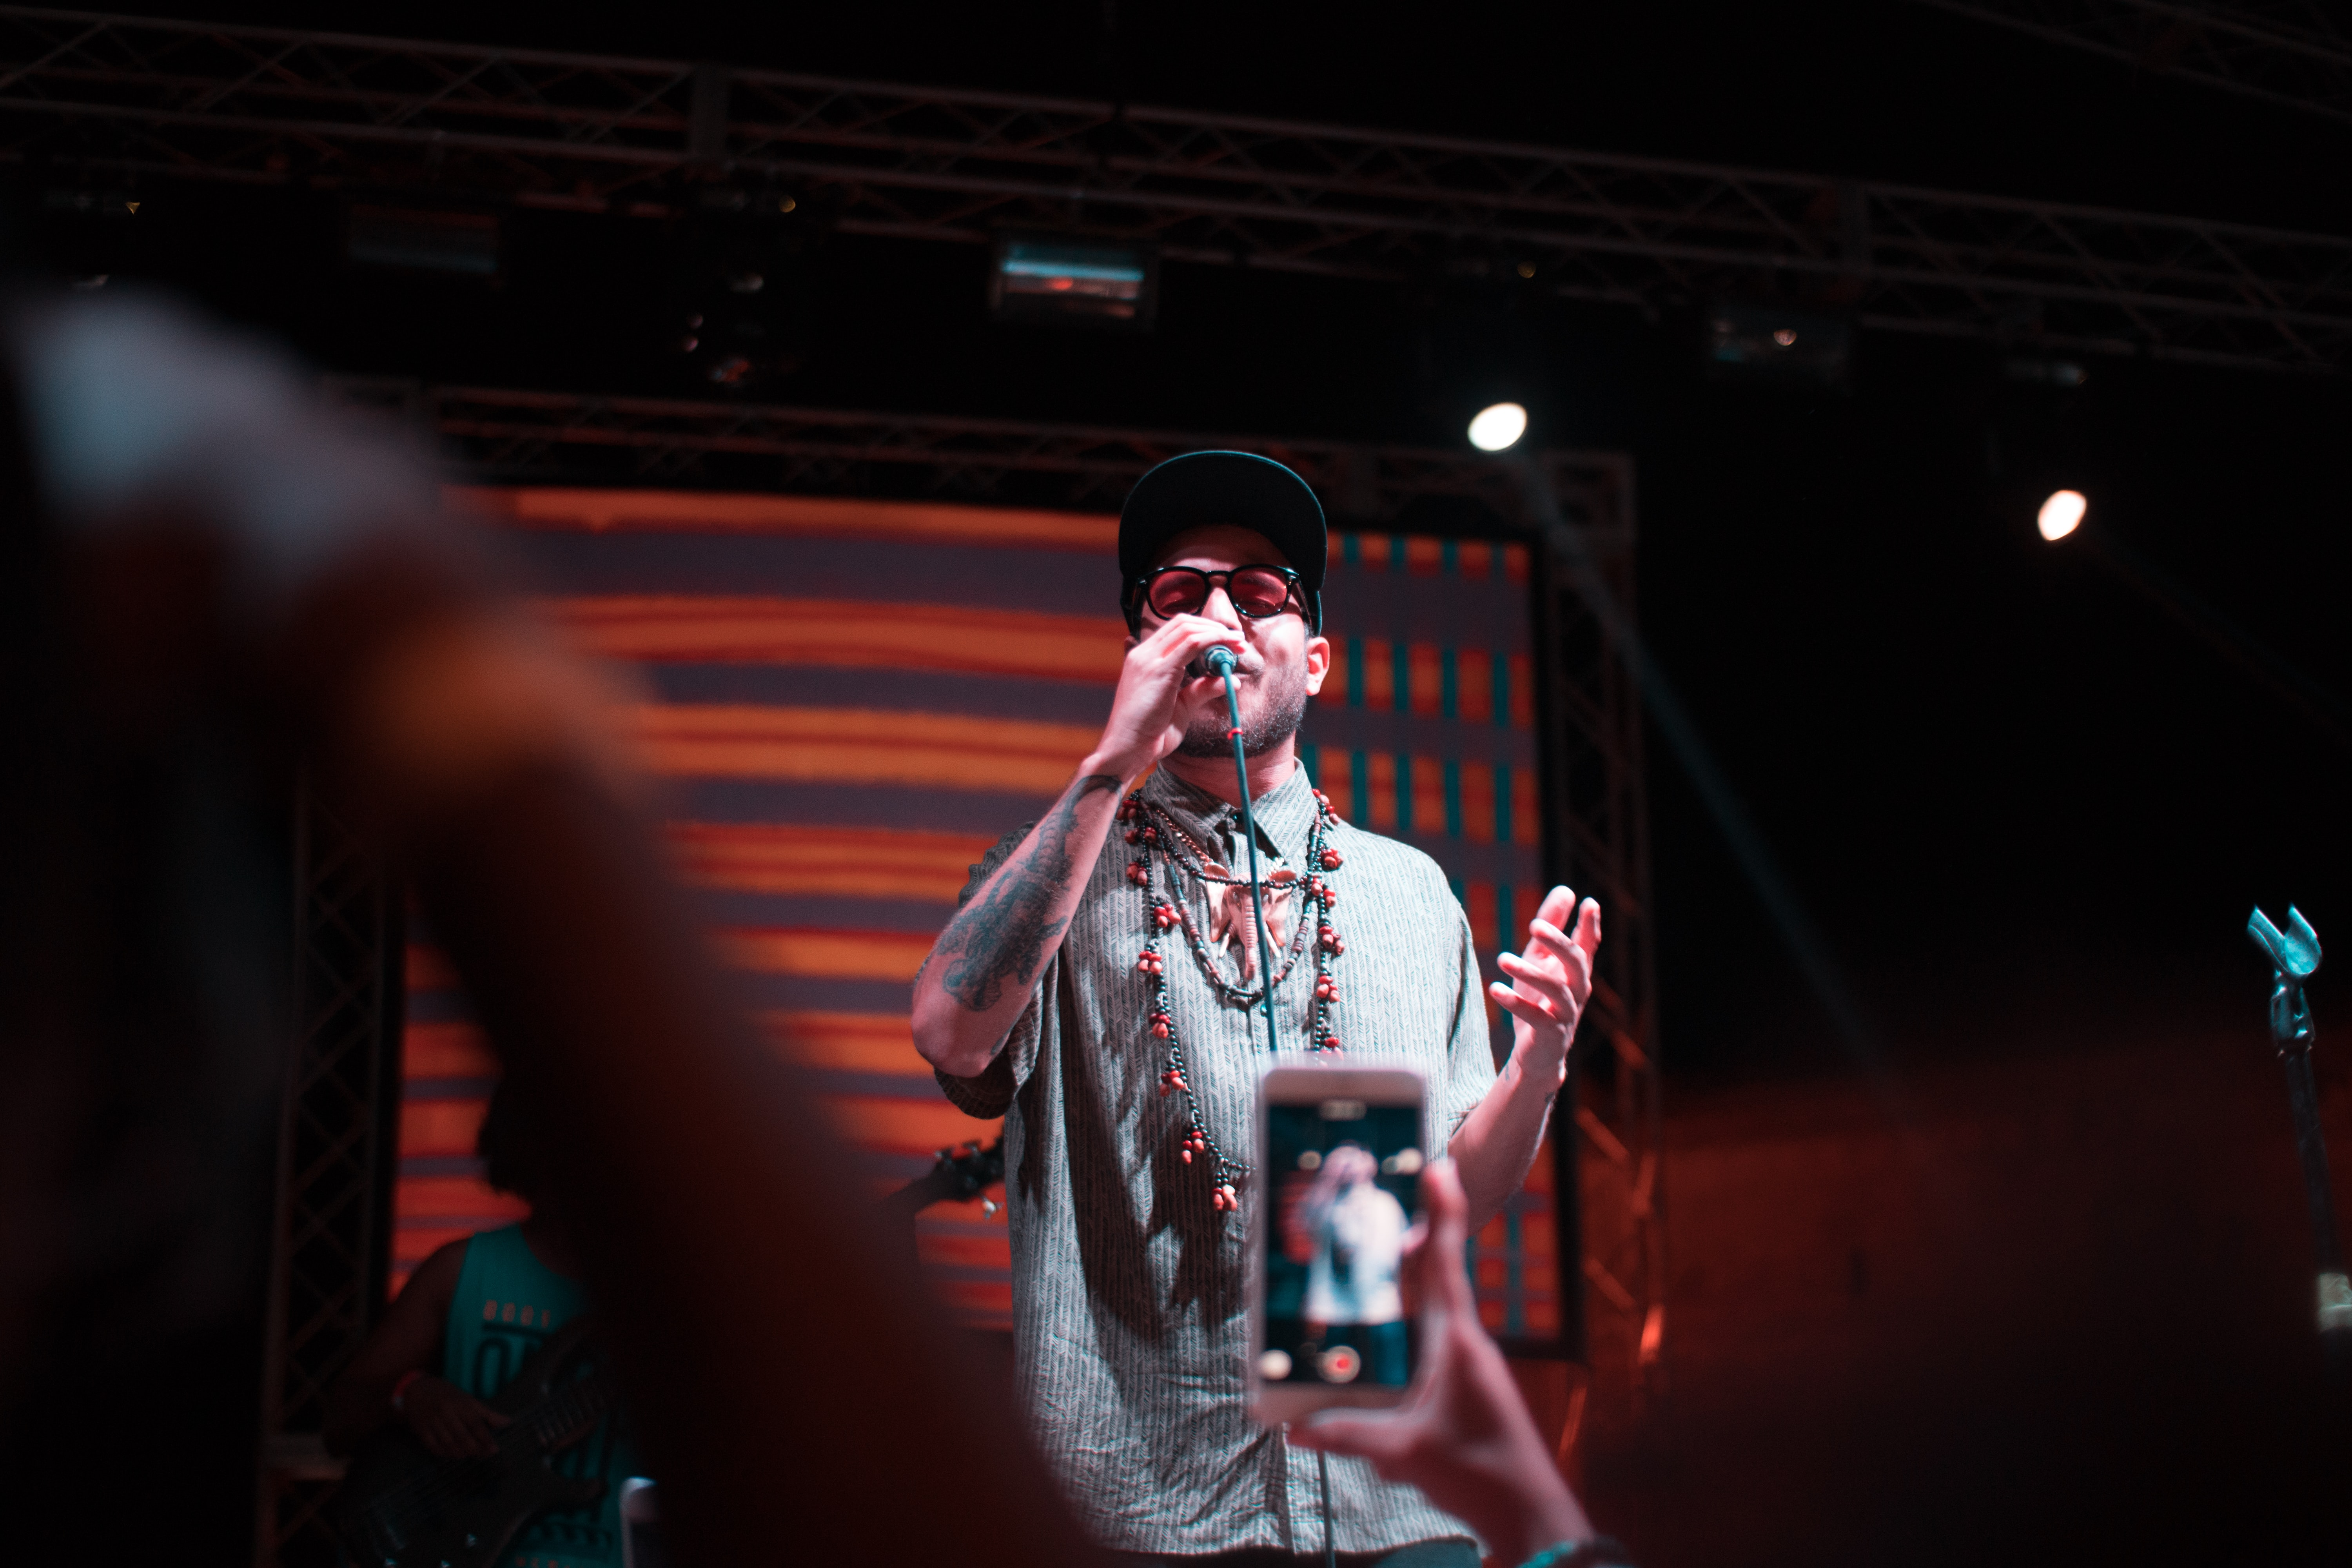 band vocalist performing on stage